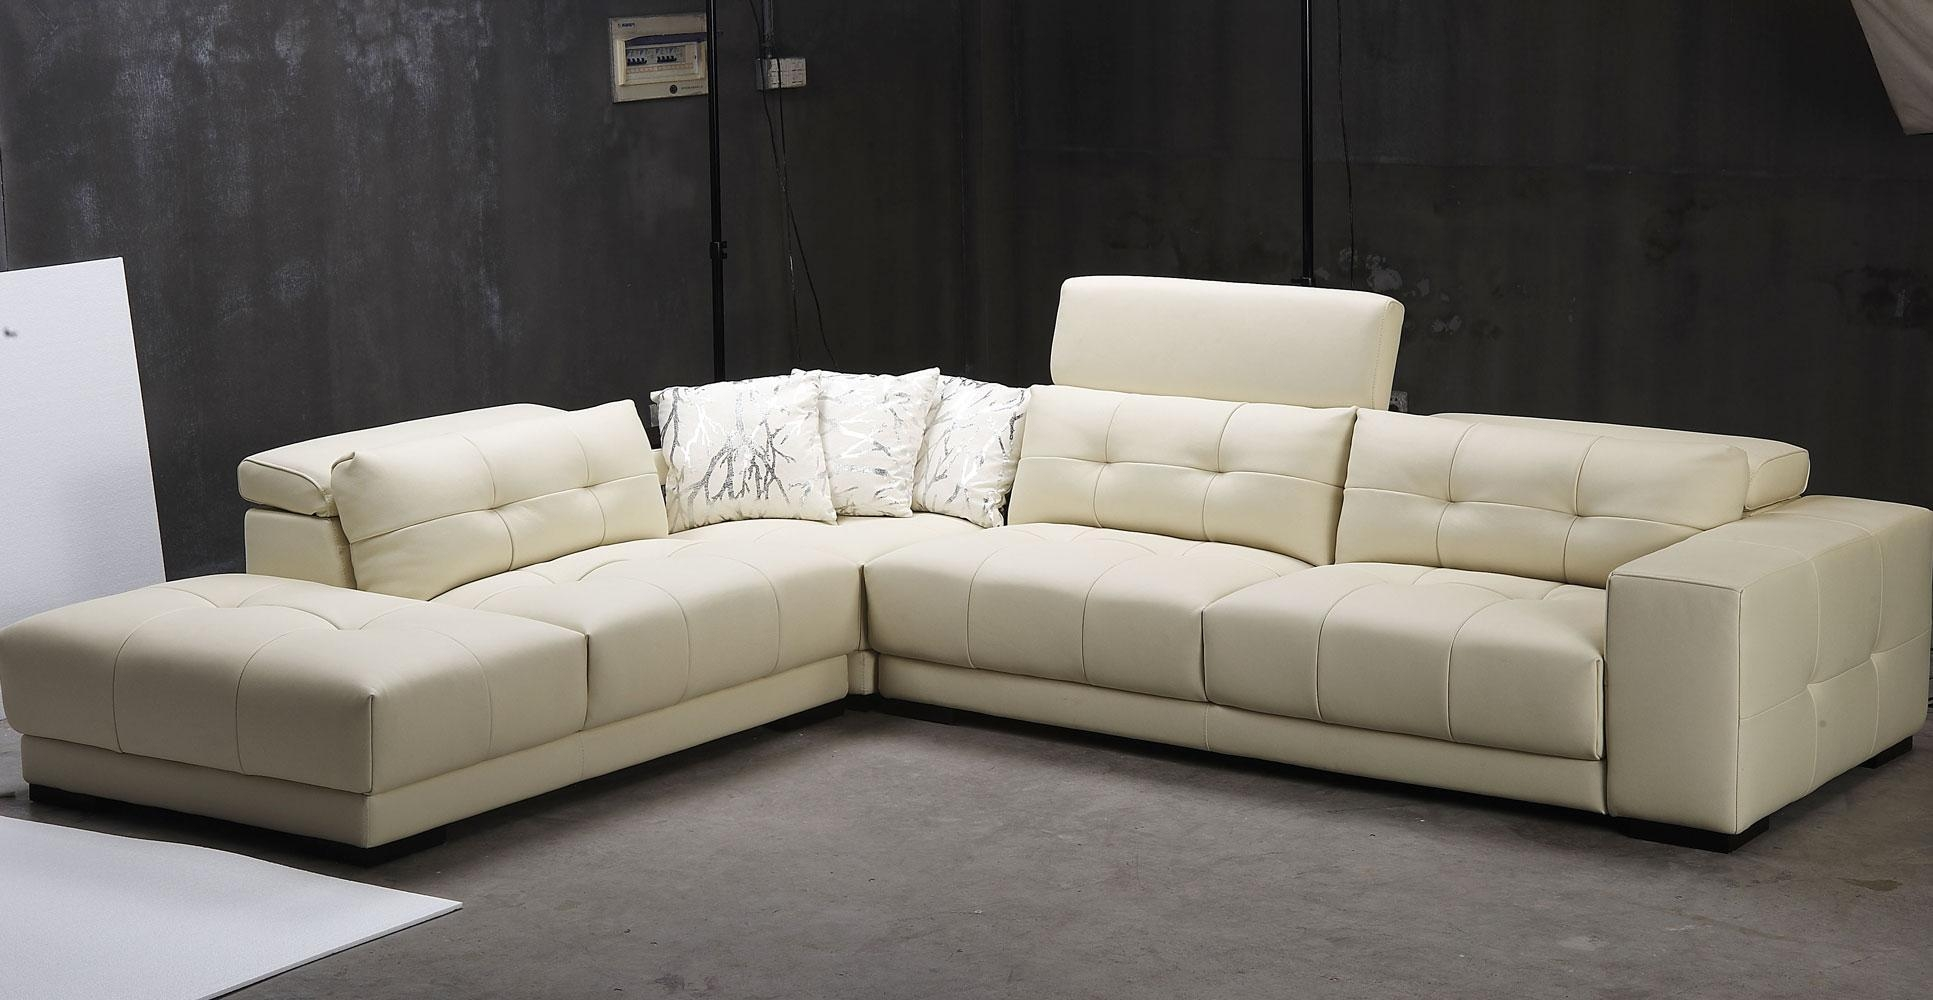 Best Modern 3 Piece White Leather Sectional Sleeper Sofa With Within 3 Piece Sectional Sleeper Sofa (View 11 of 15)